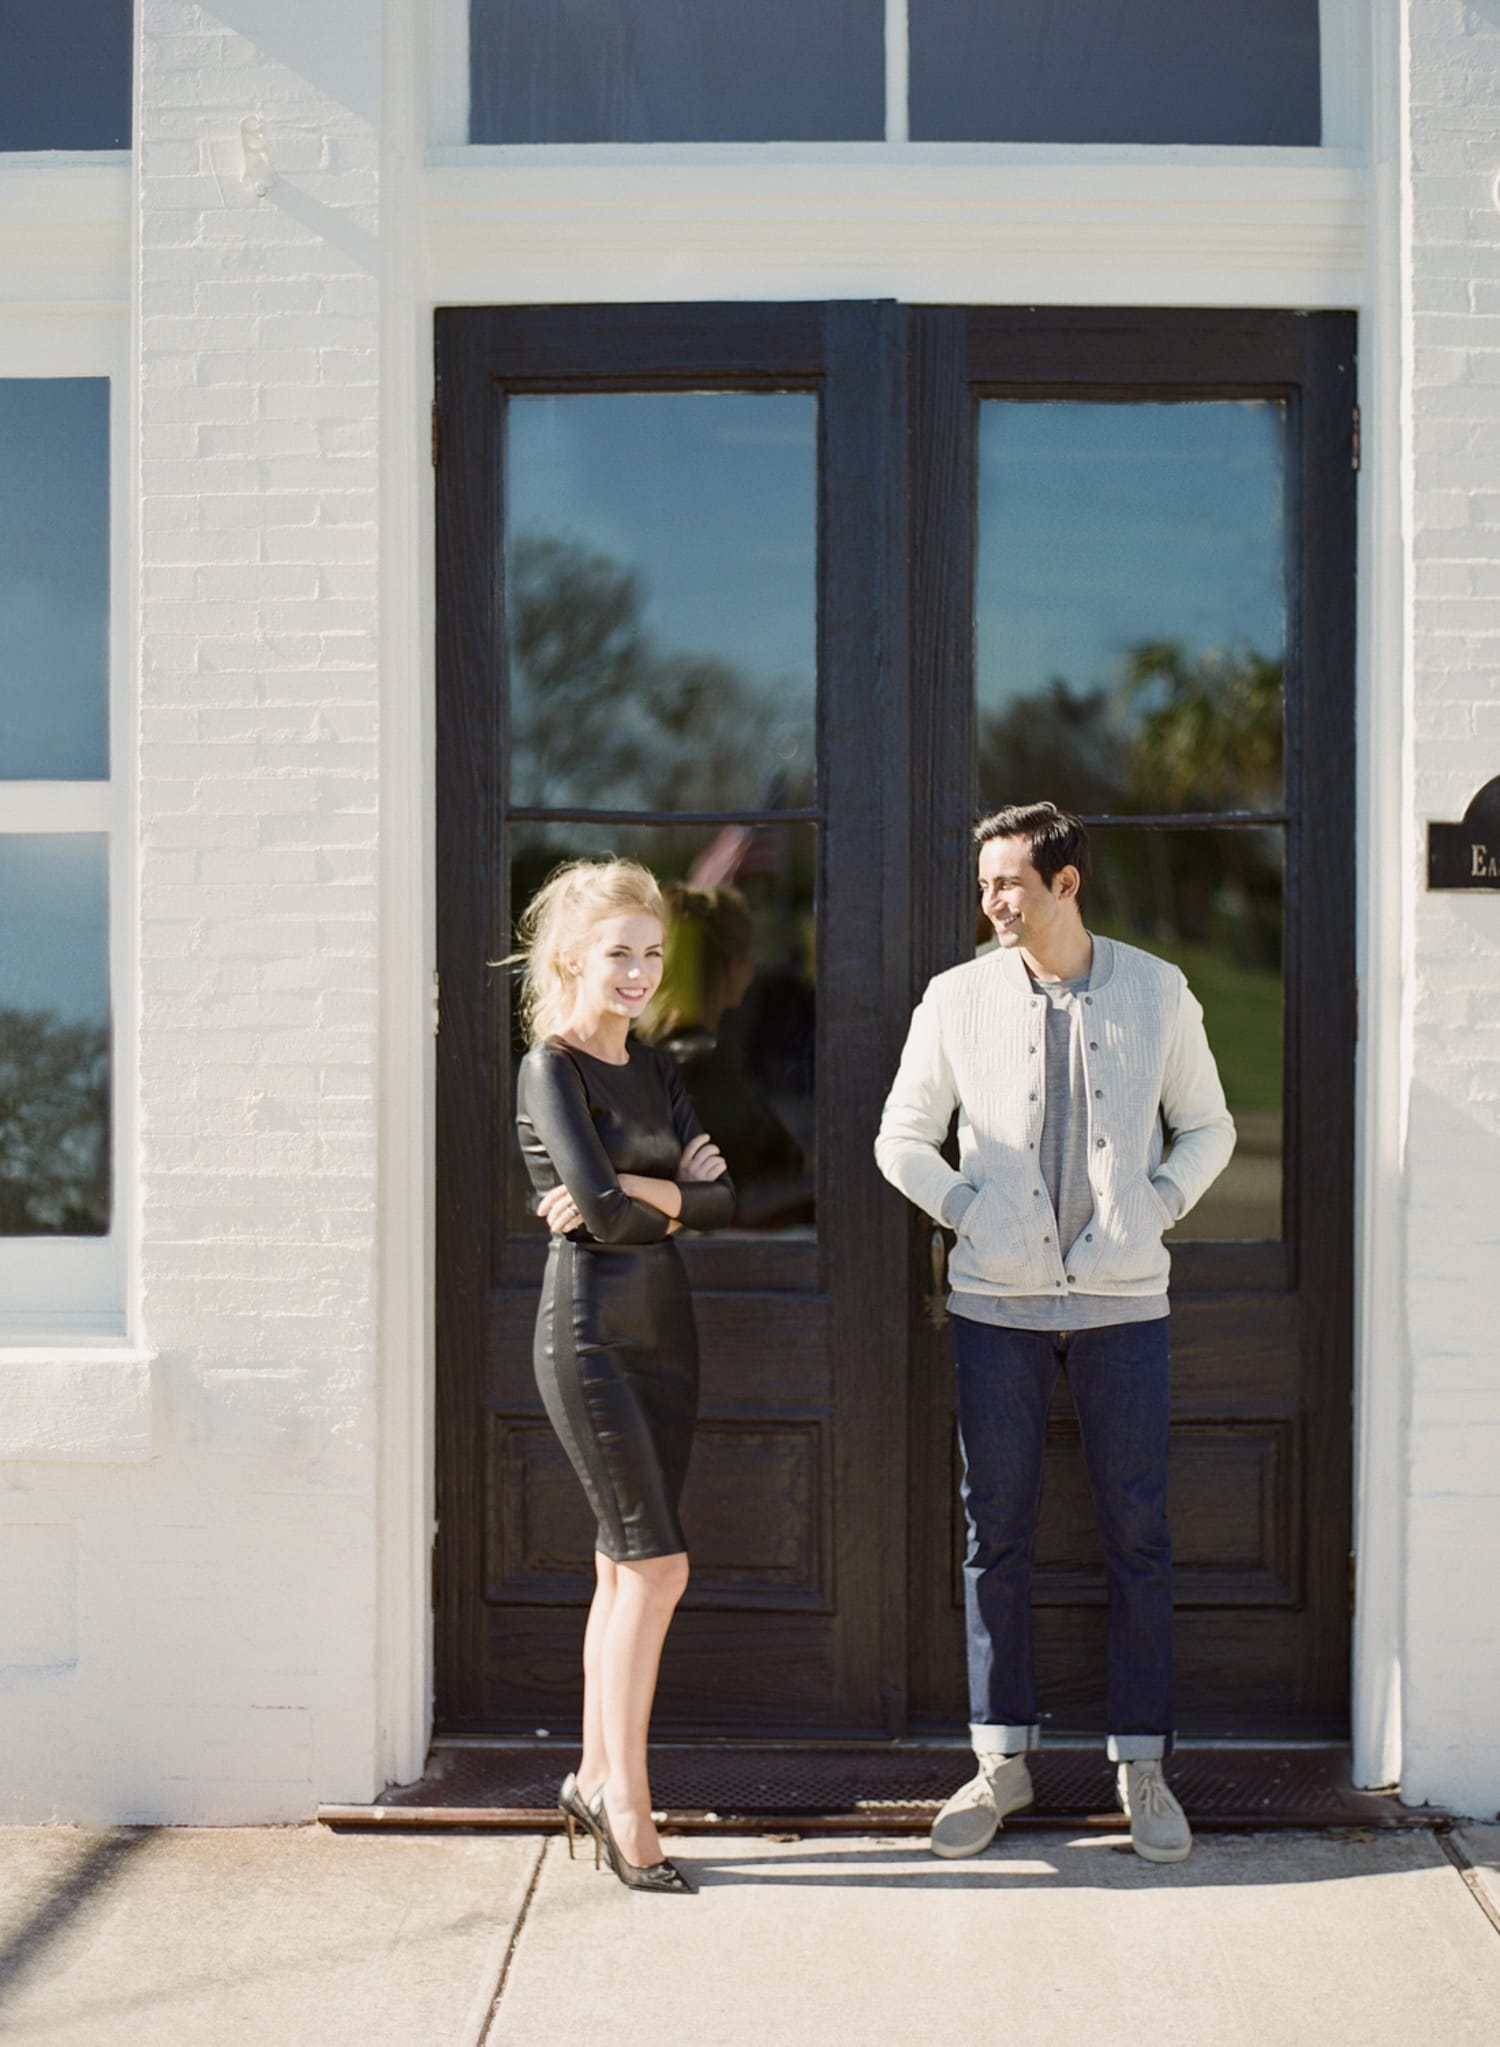 ONE_ELEVEN_EAST_MODERN_ENGAGEMENT_SHOOT_AUSTIN_TX_BY_MATTHEW_MOORE_PHOTOGRAPHY_00153.jpg